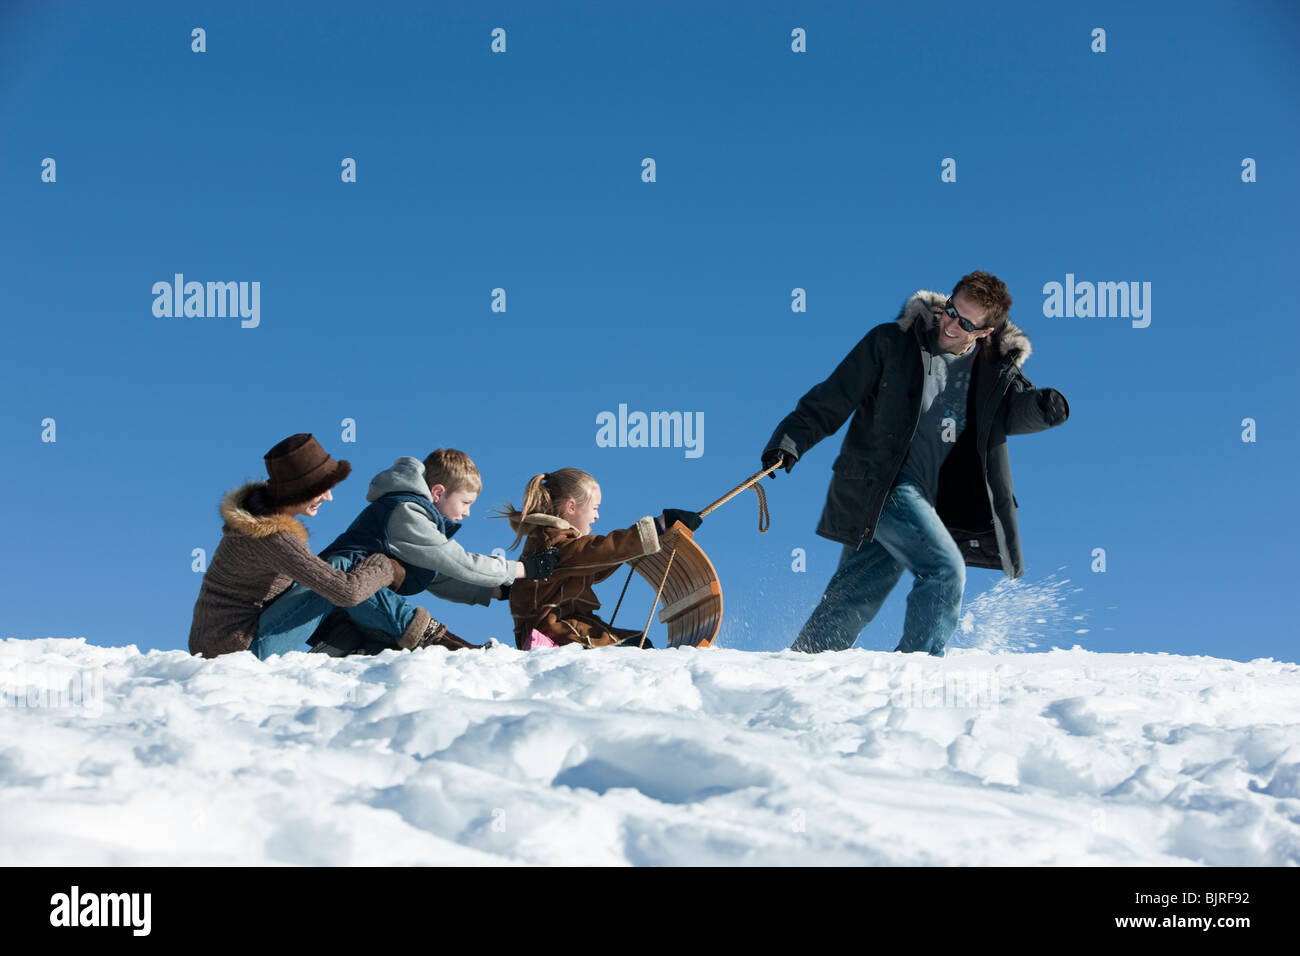 USA, Utah, Big Cottonwood Canyon, father pulling family on toboggan in mountains - Stock Image